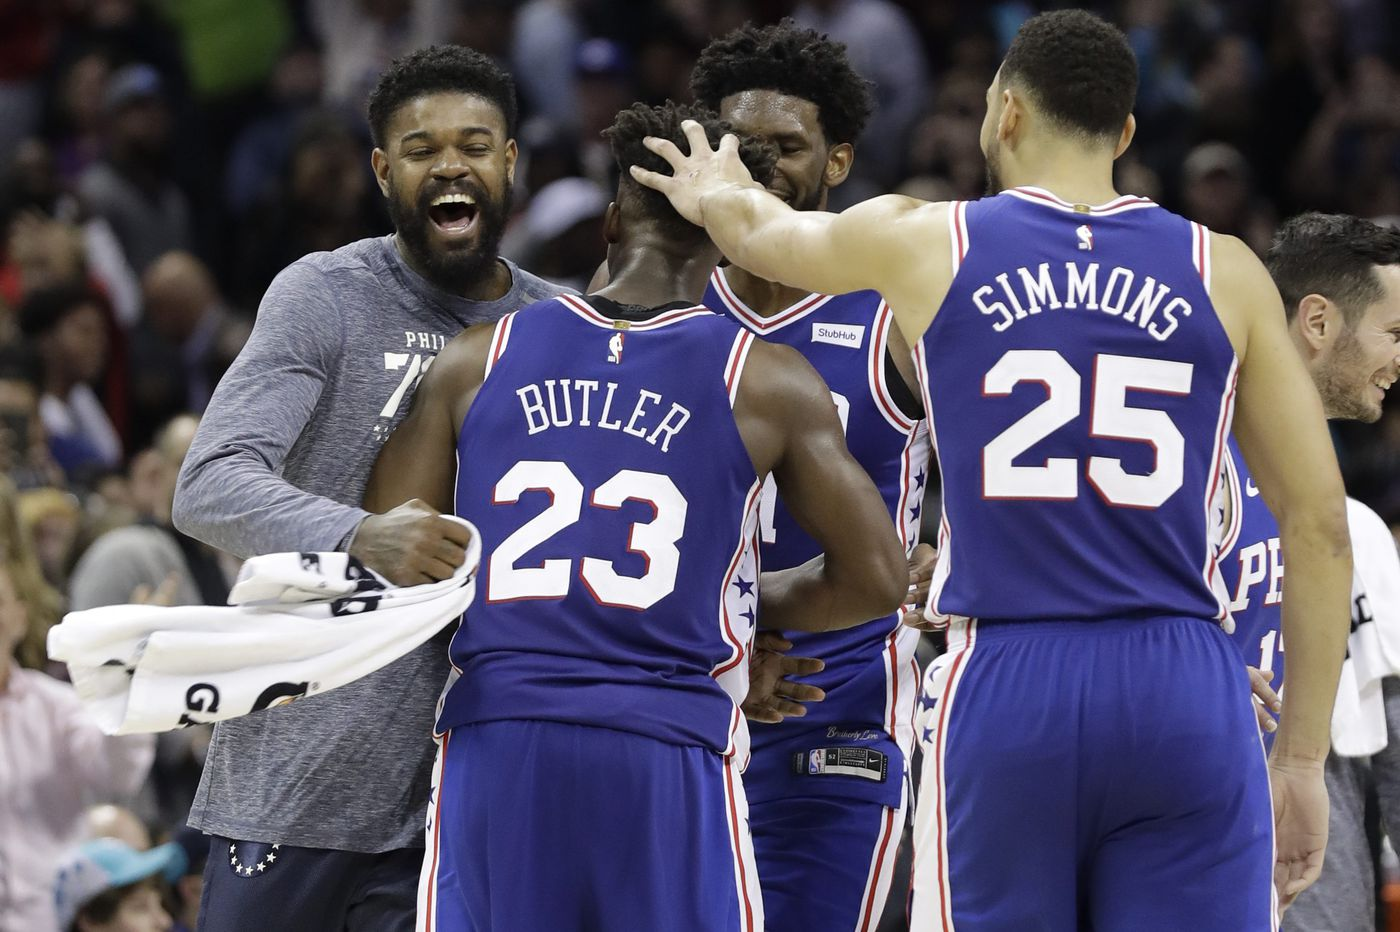 Jimmy Butler on adjusting to Sixers: 'Basketball is basketball to me'